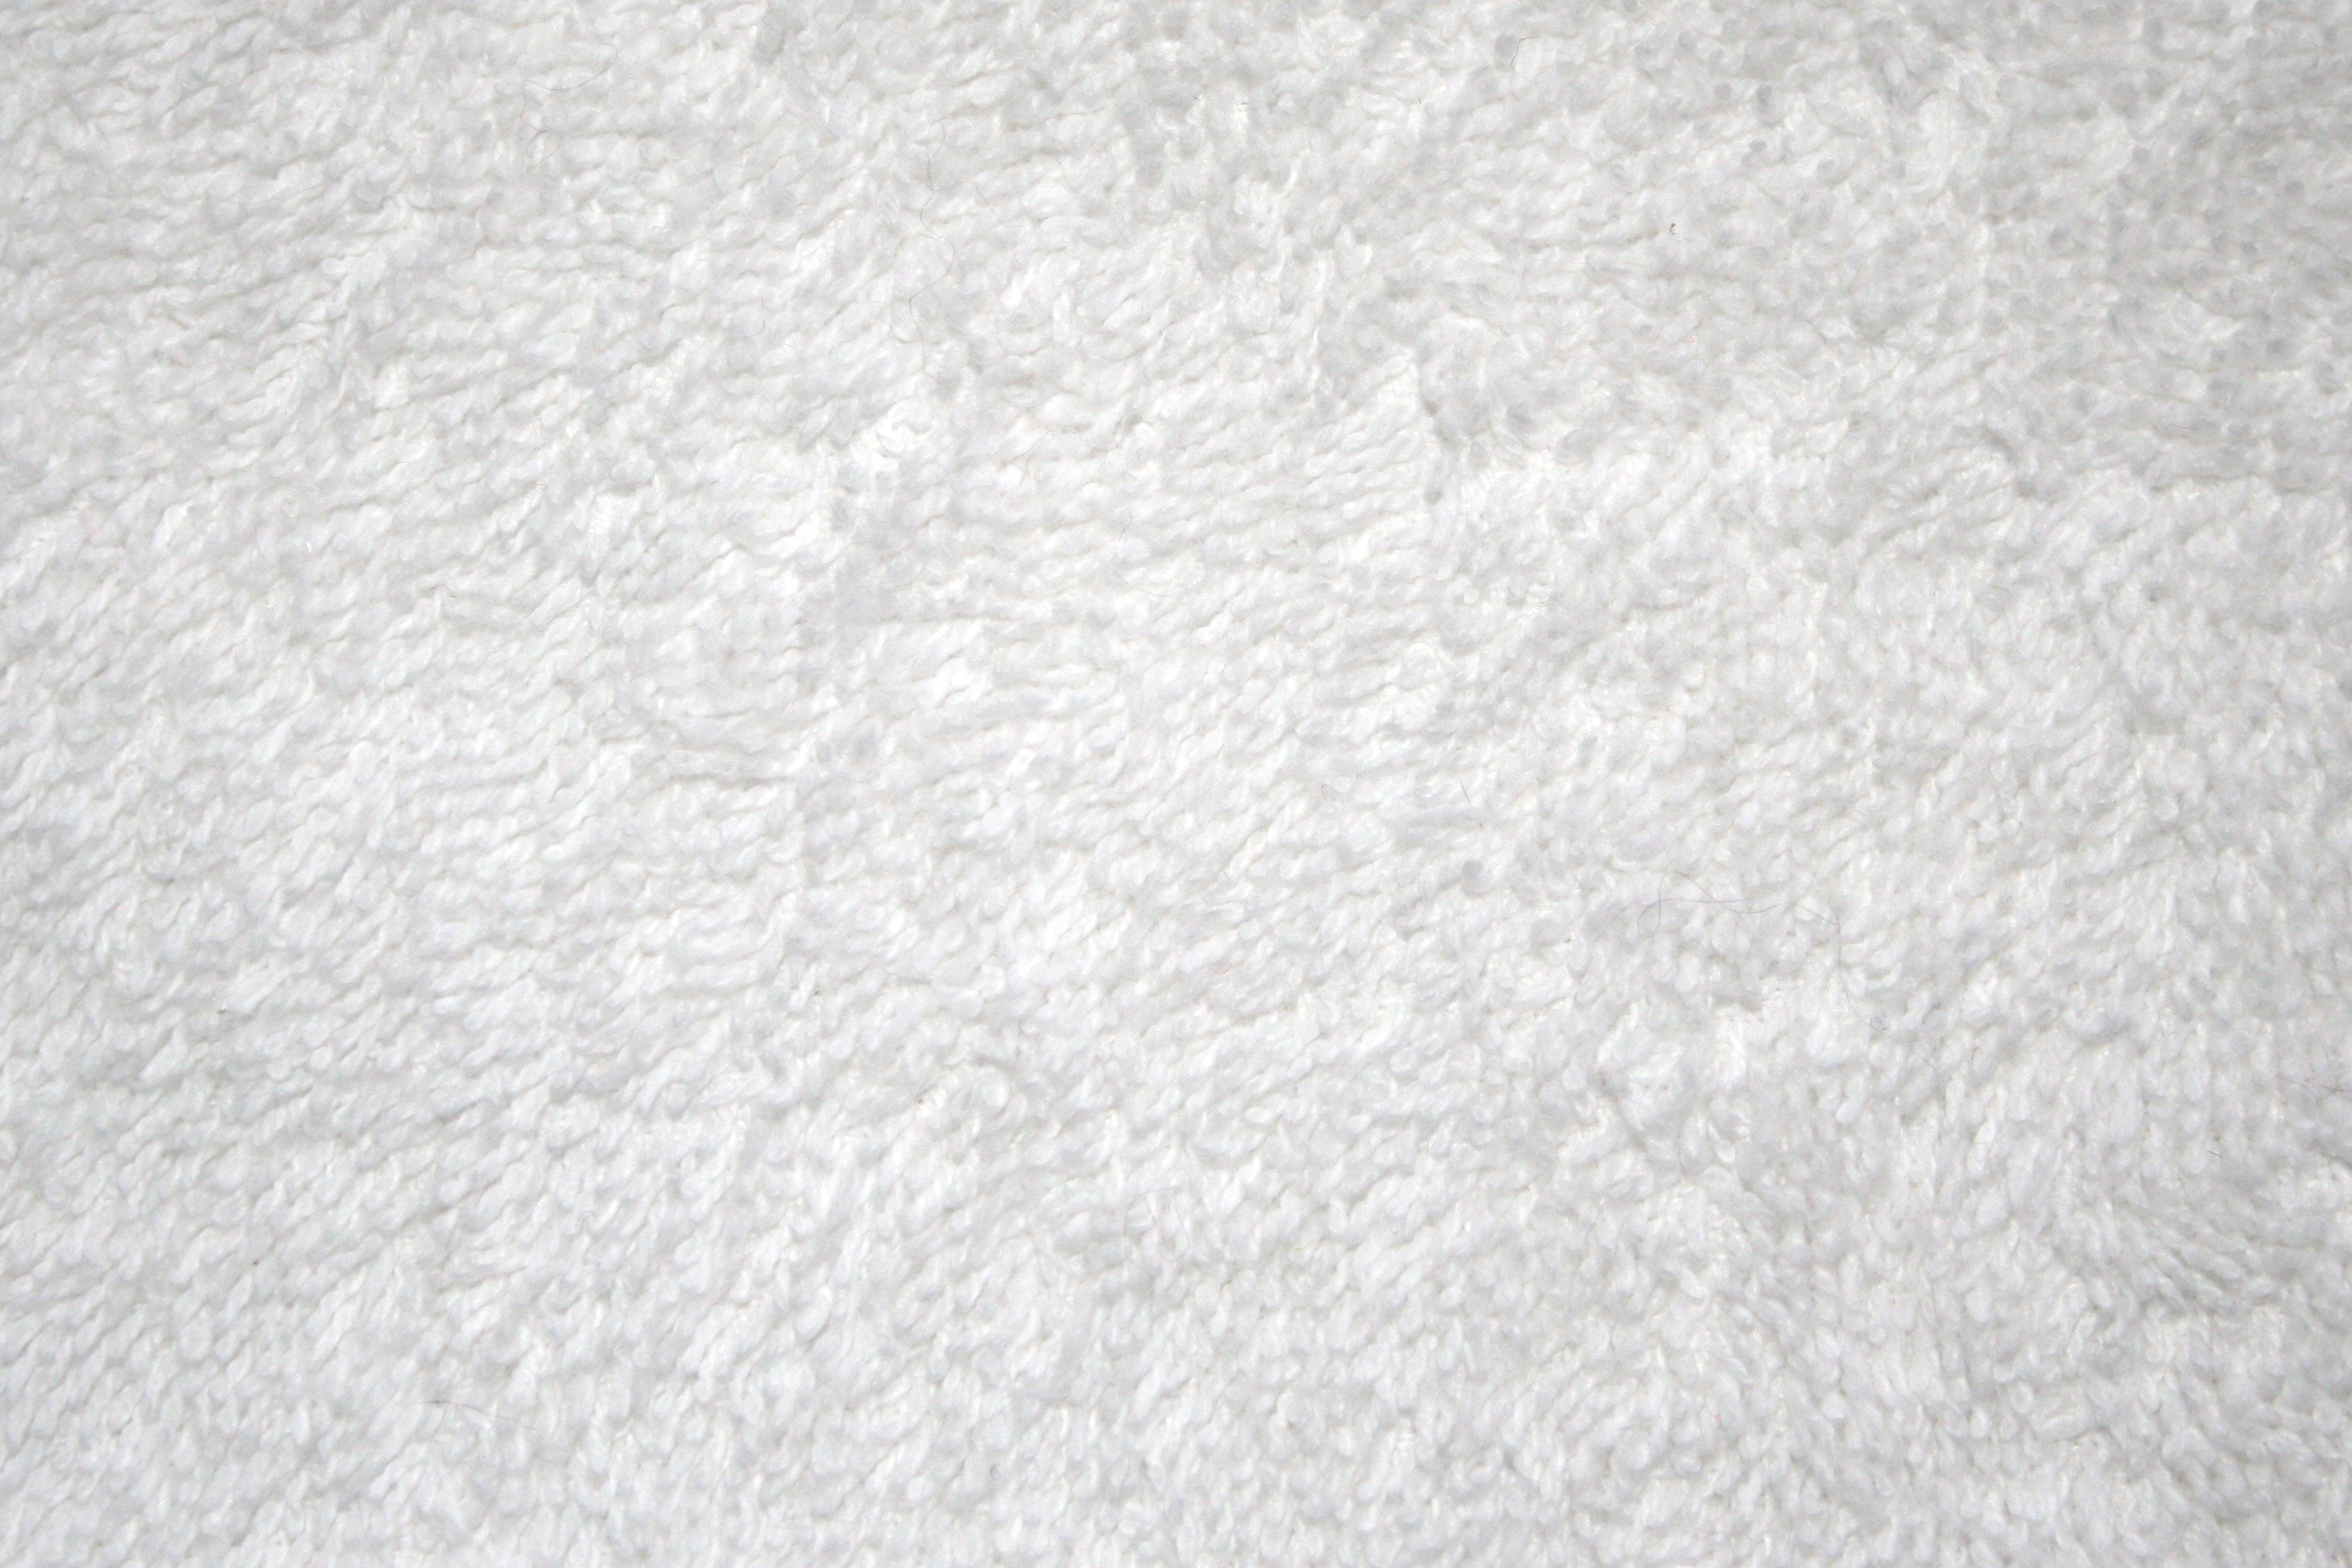 Where can you find free textured backgrounds?